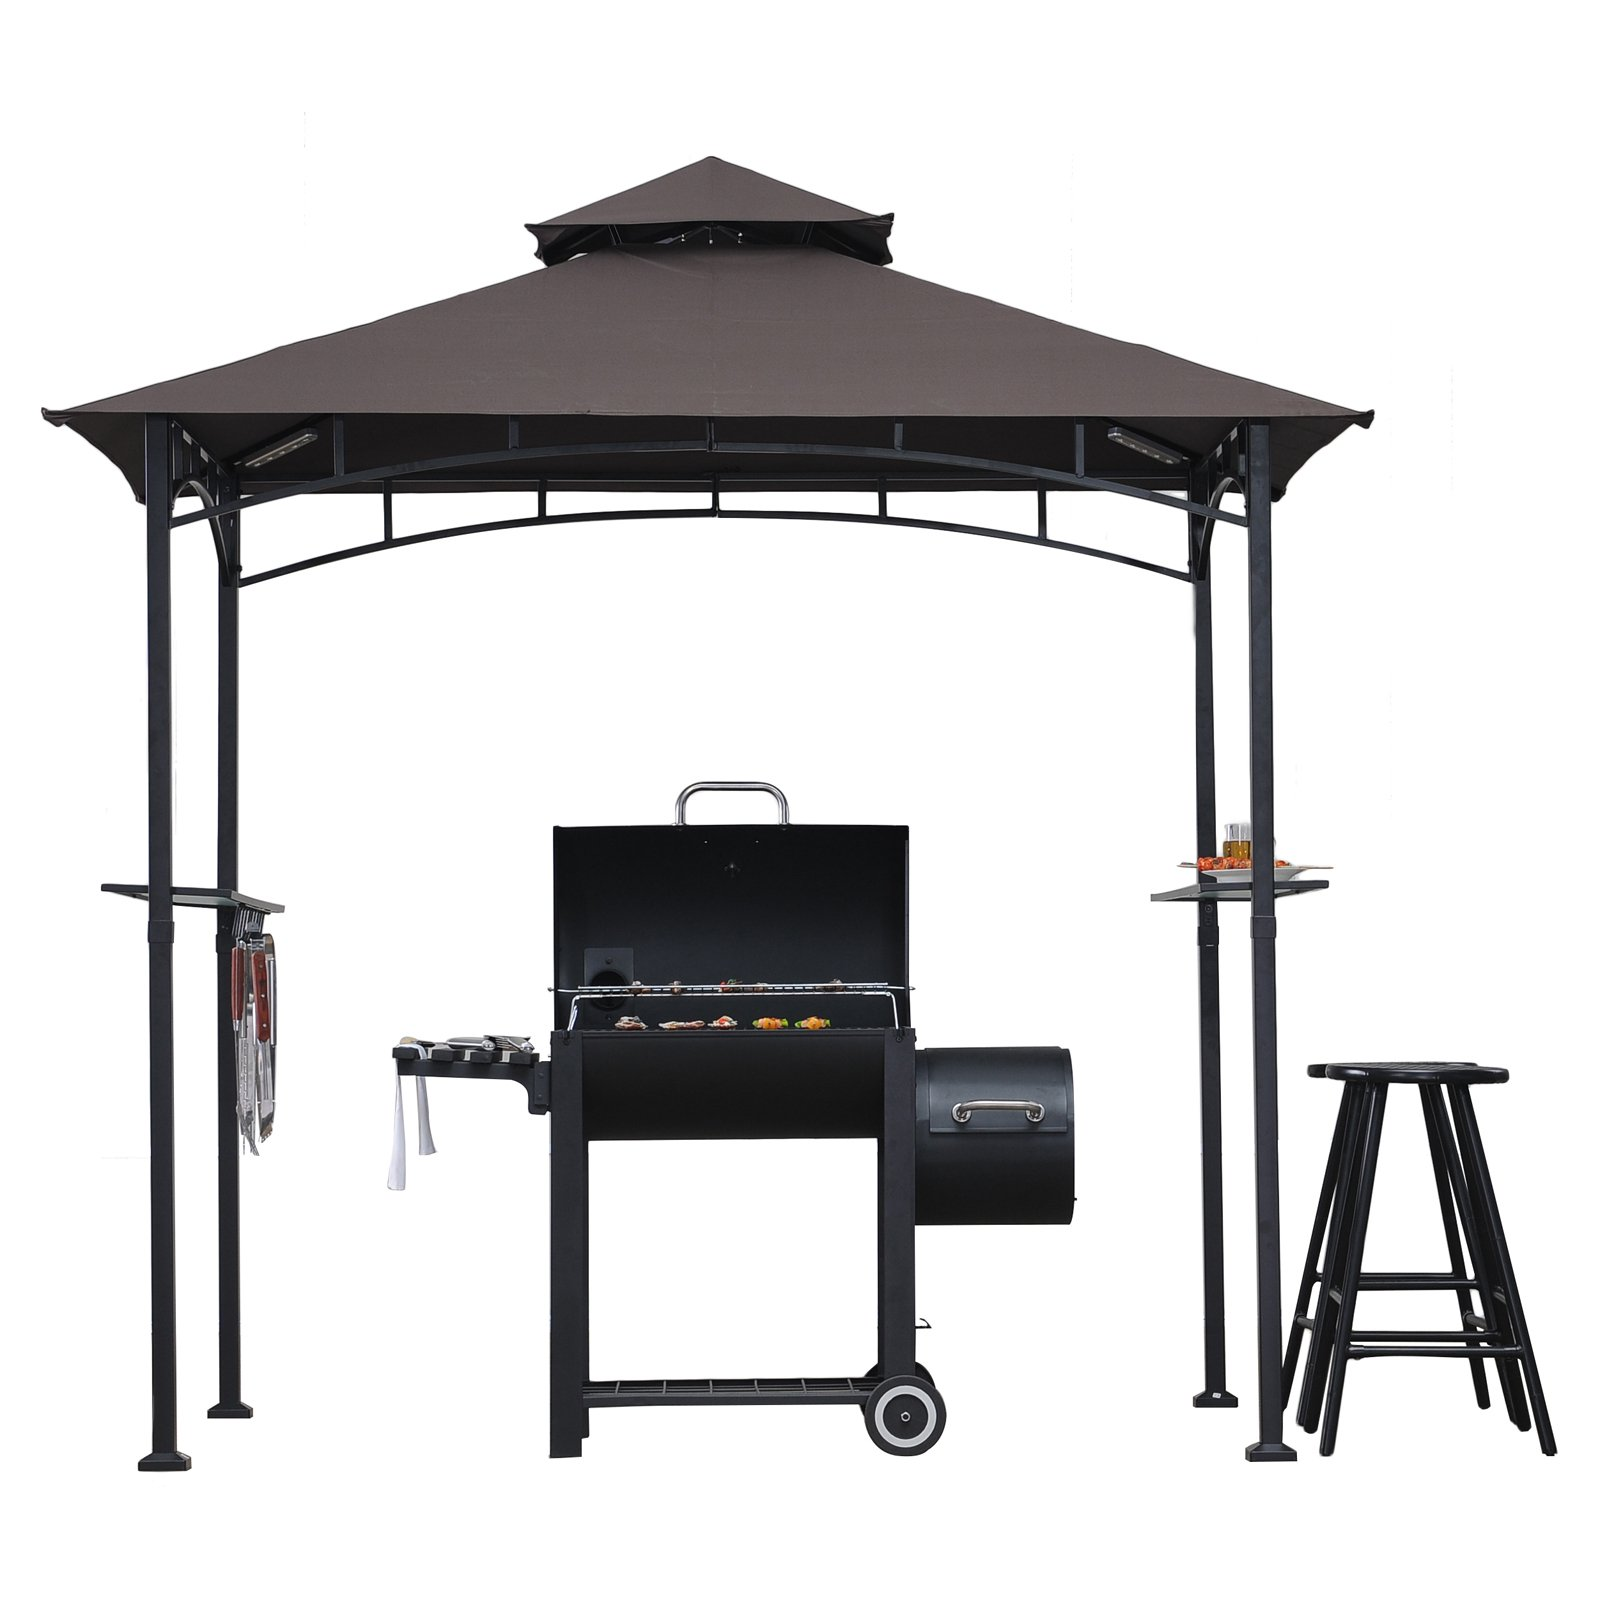 Sunjoy 8 x 5 ft. Hacienda Grill Gazebo